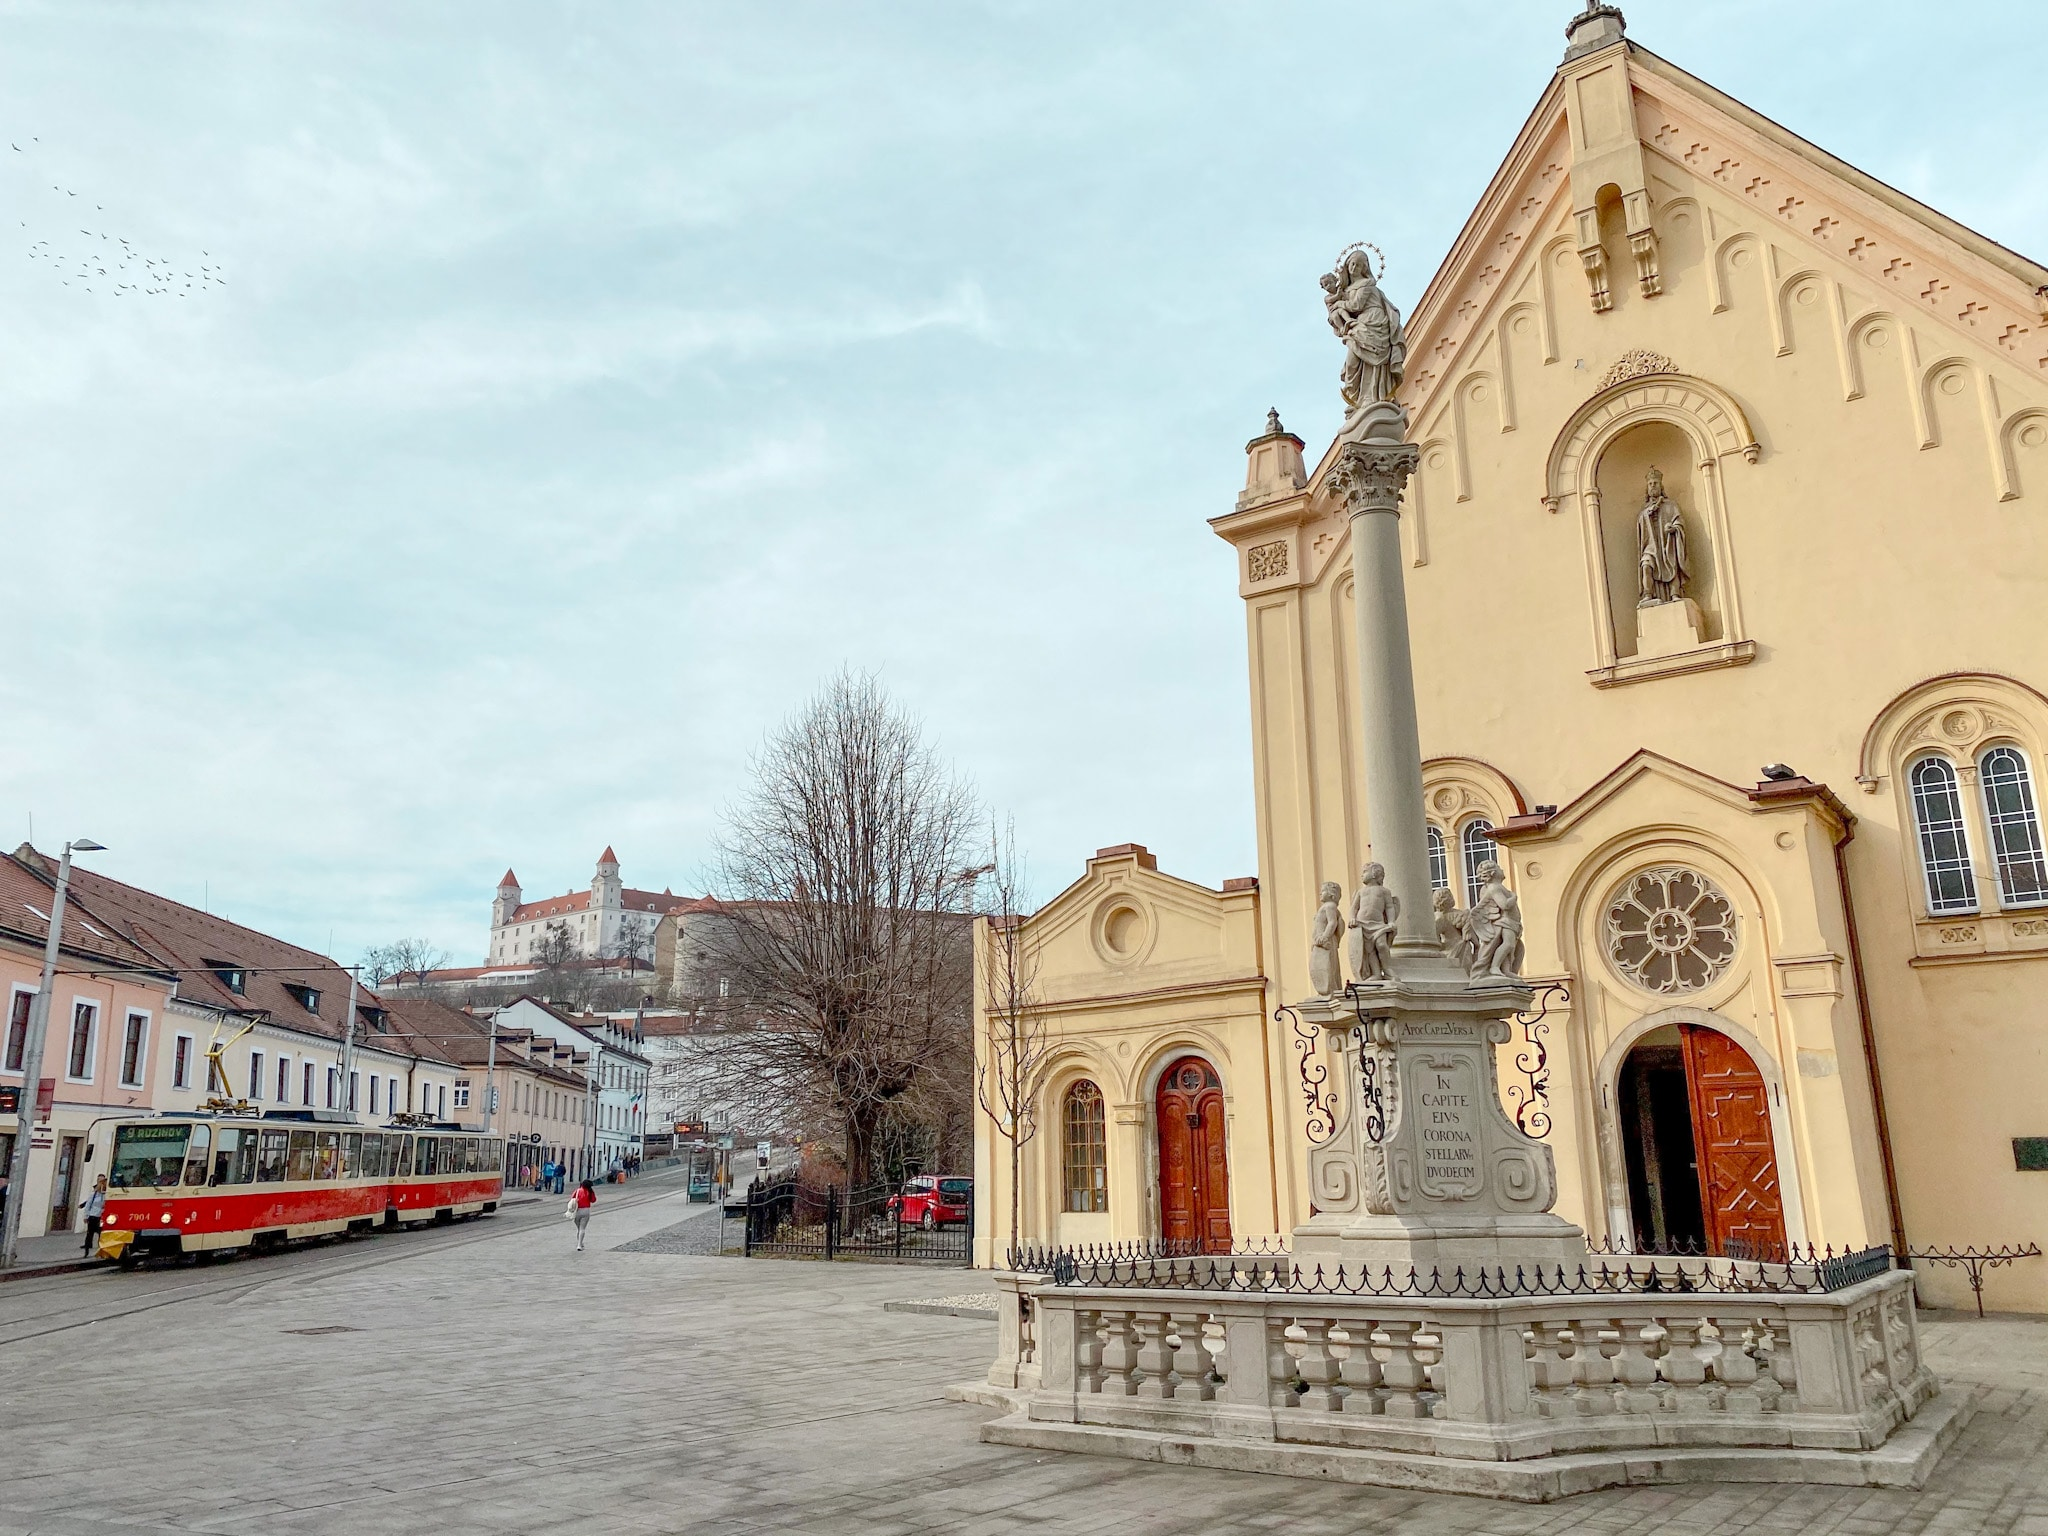 A view of Bratislava, Slovakia, with Bratislava Castle in the distance.